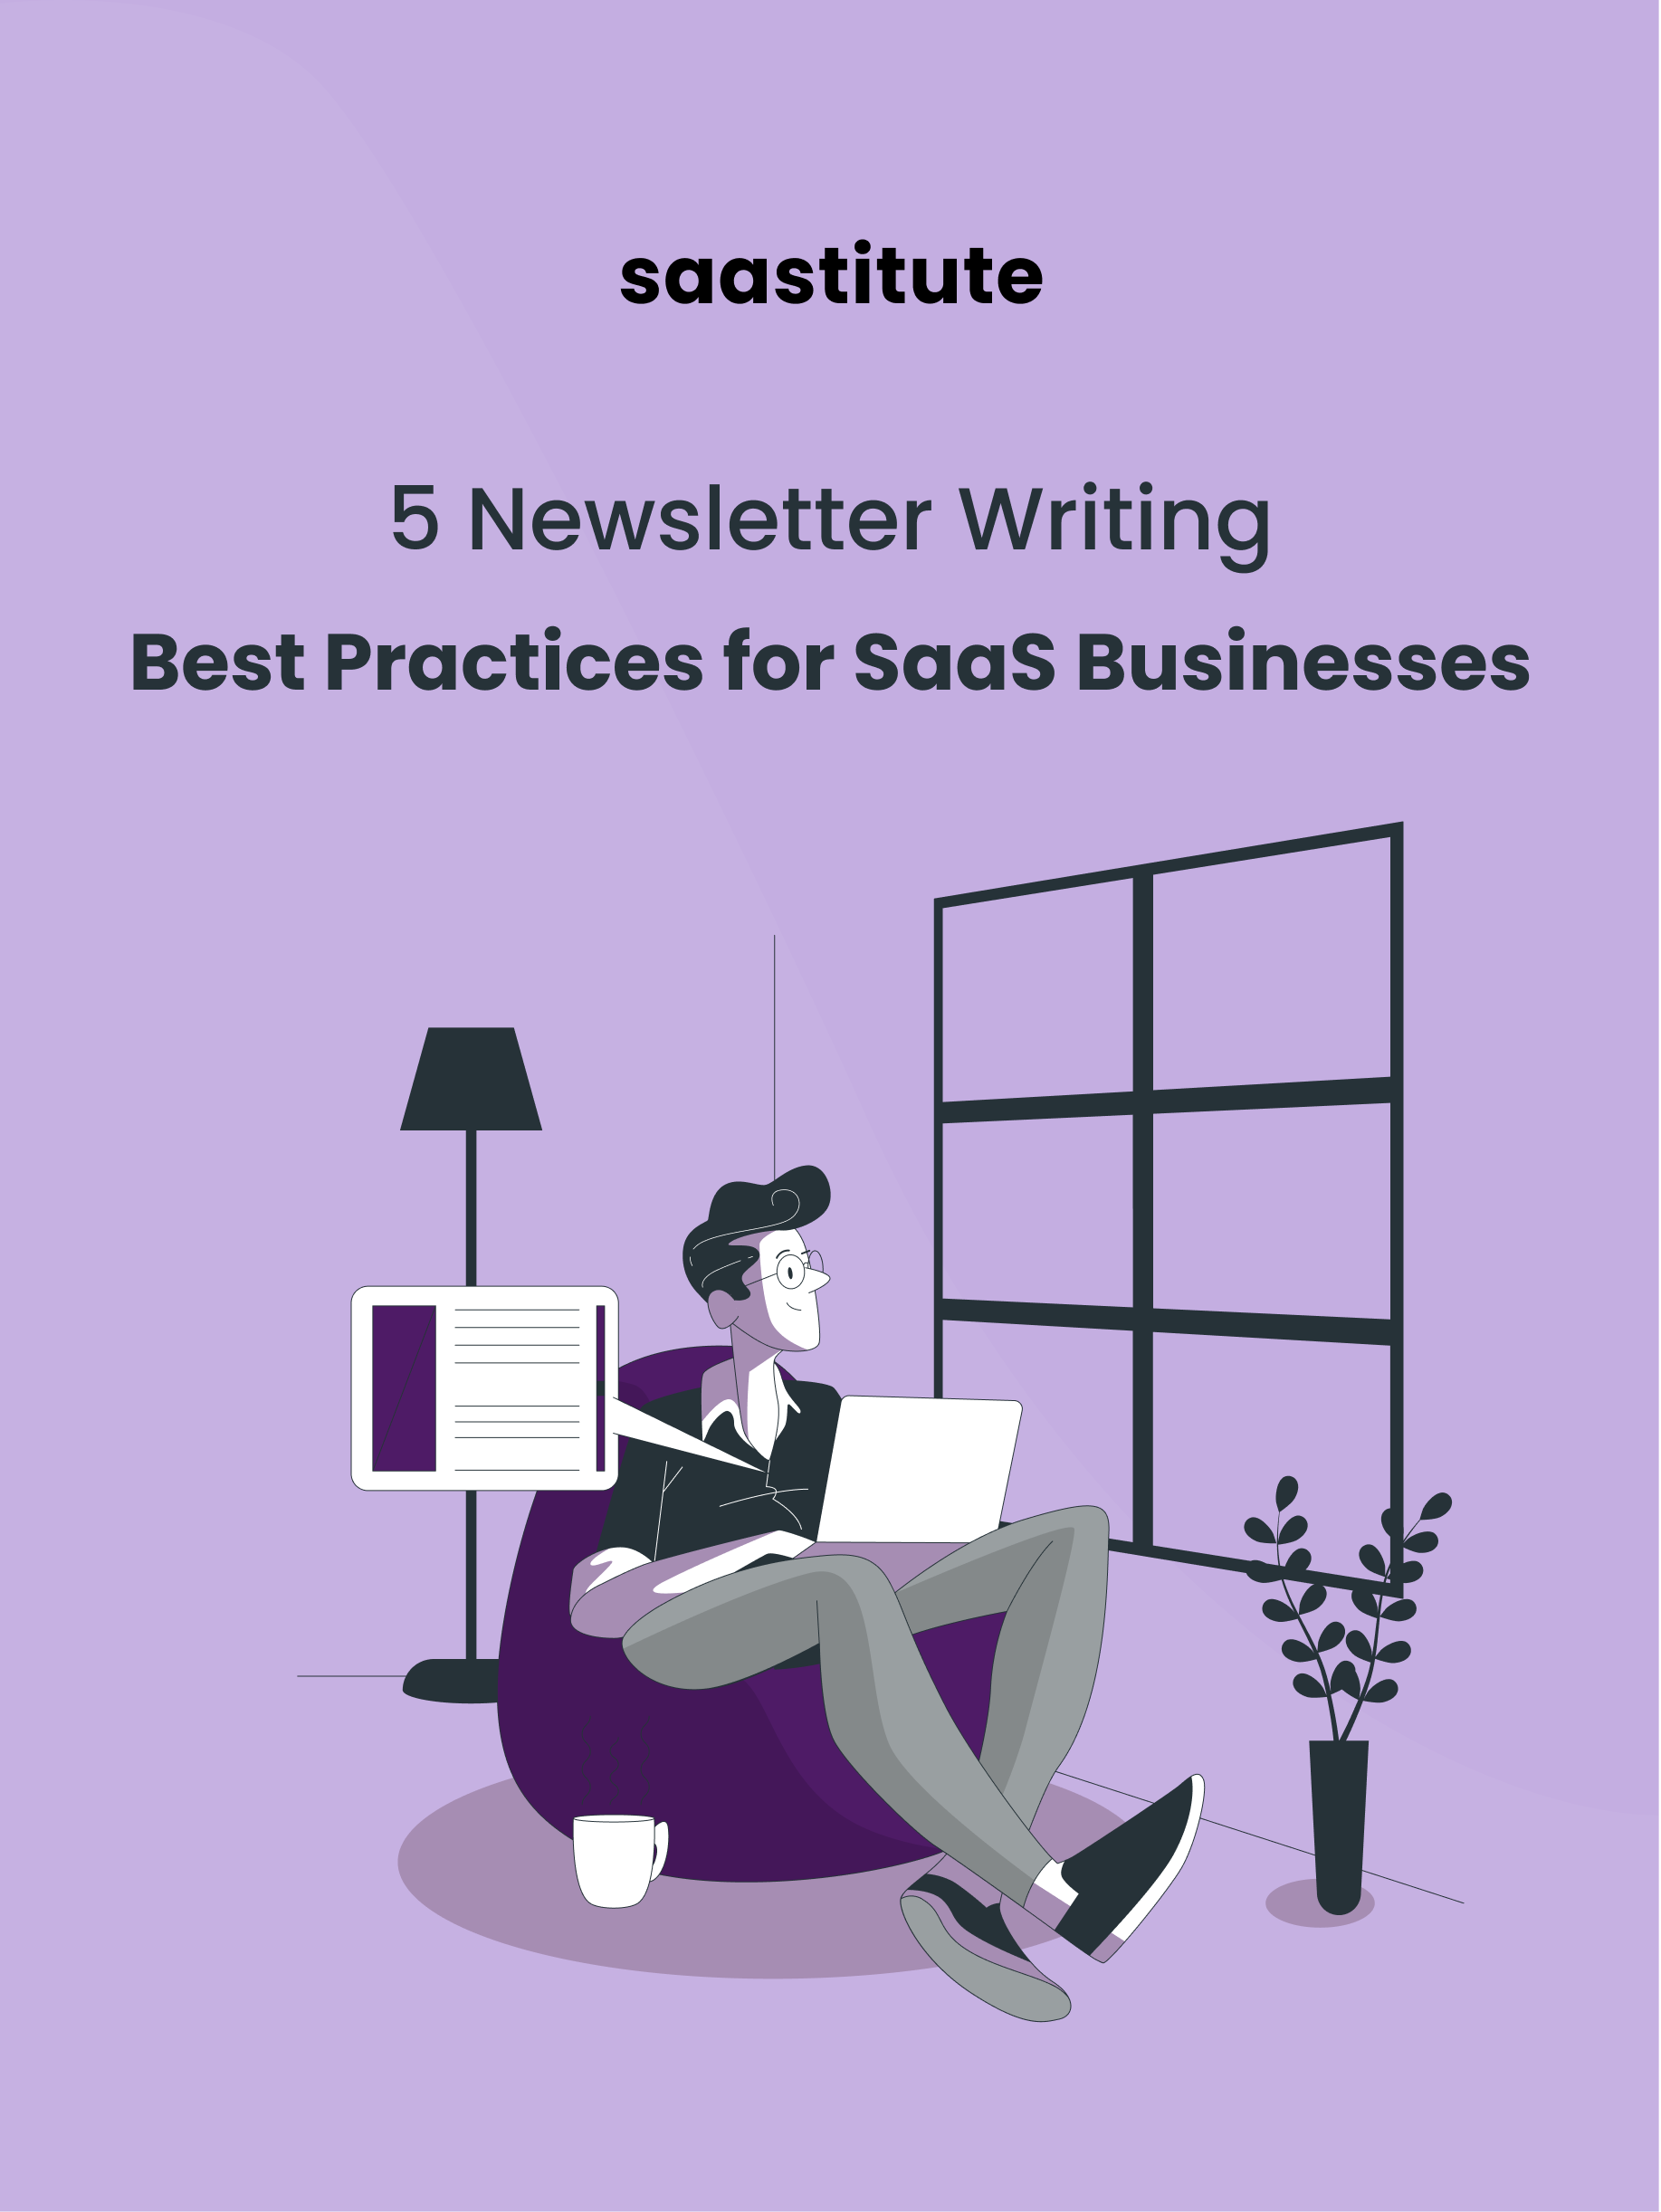 5 Newsletter Writing Best Practices for SaaS Businesses